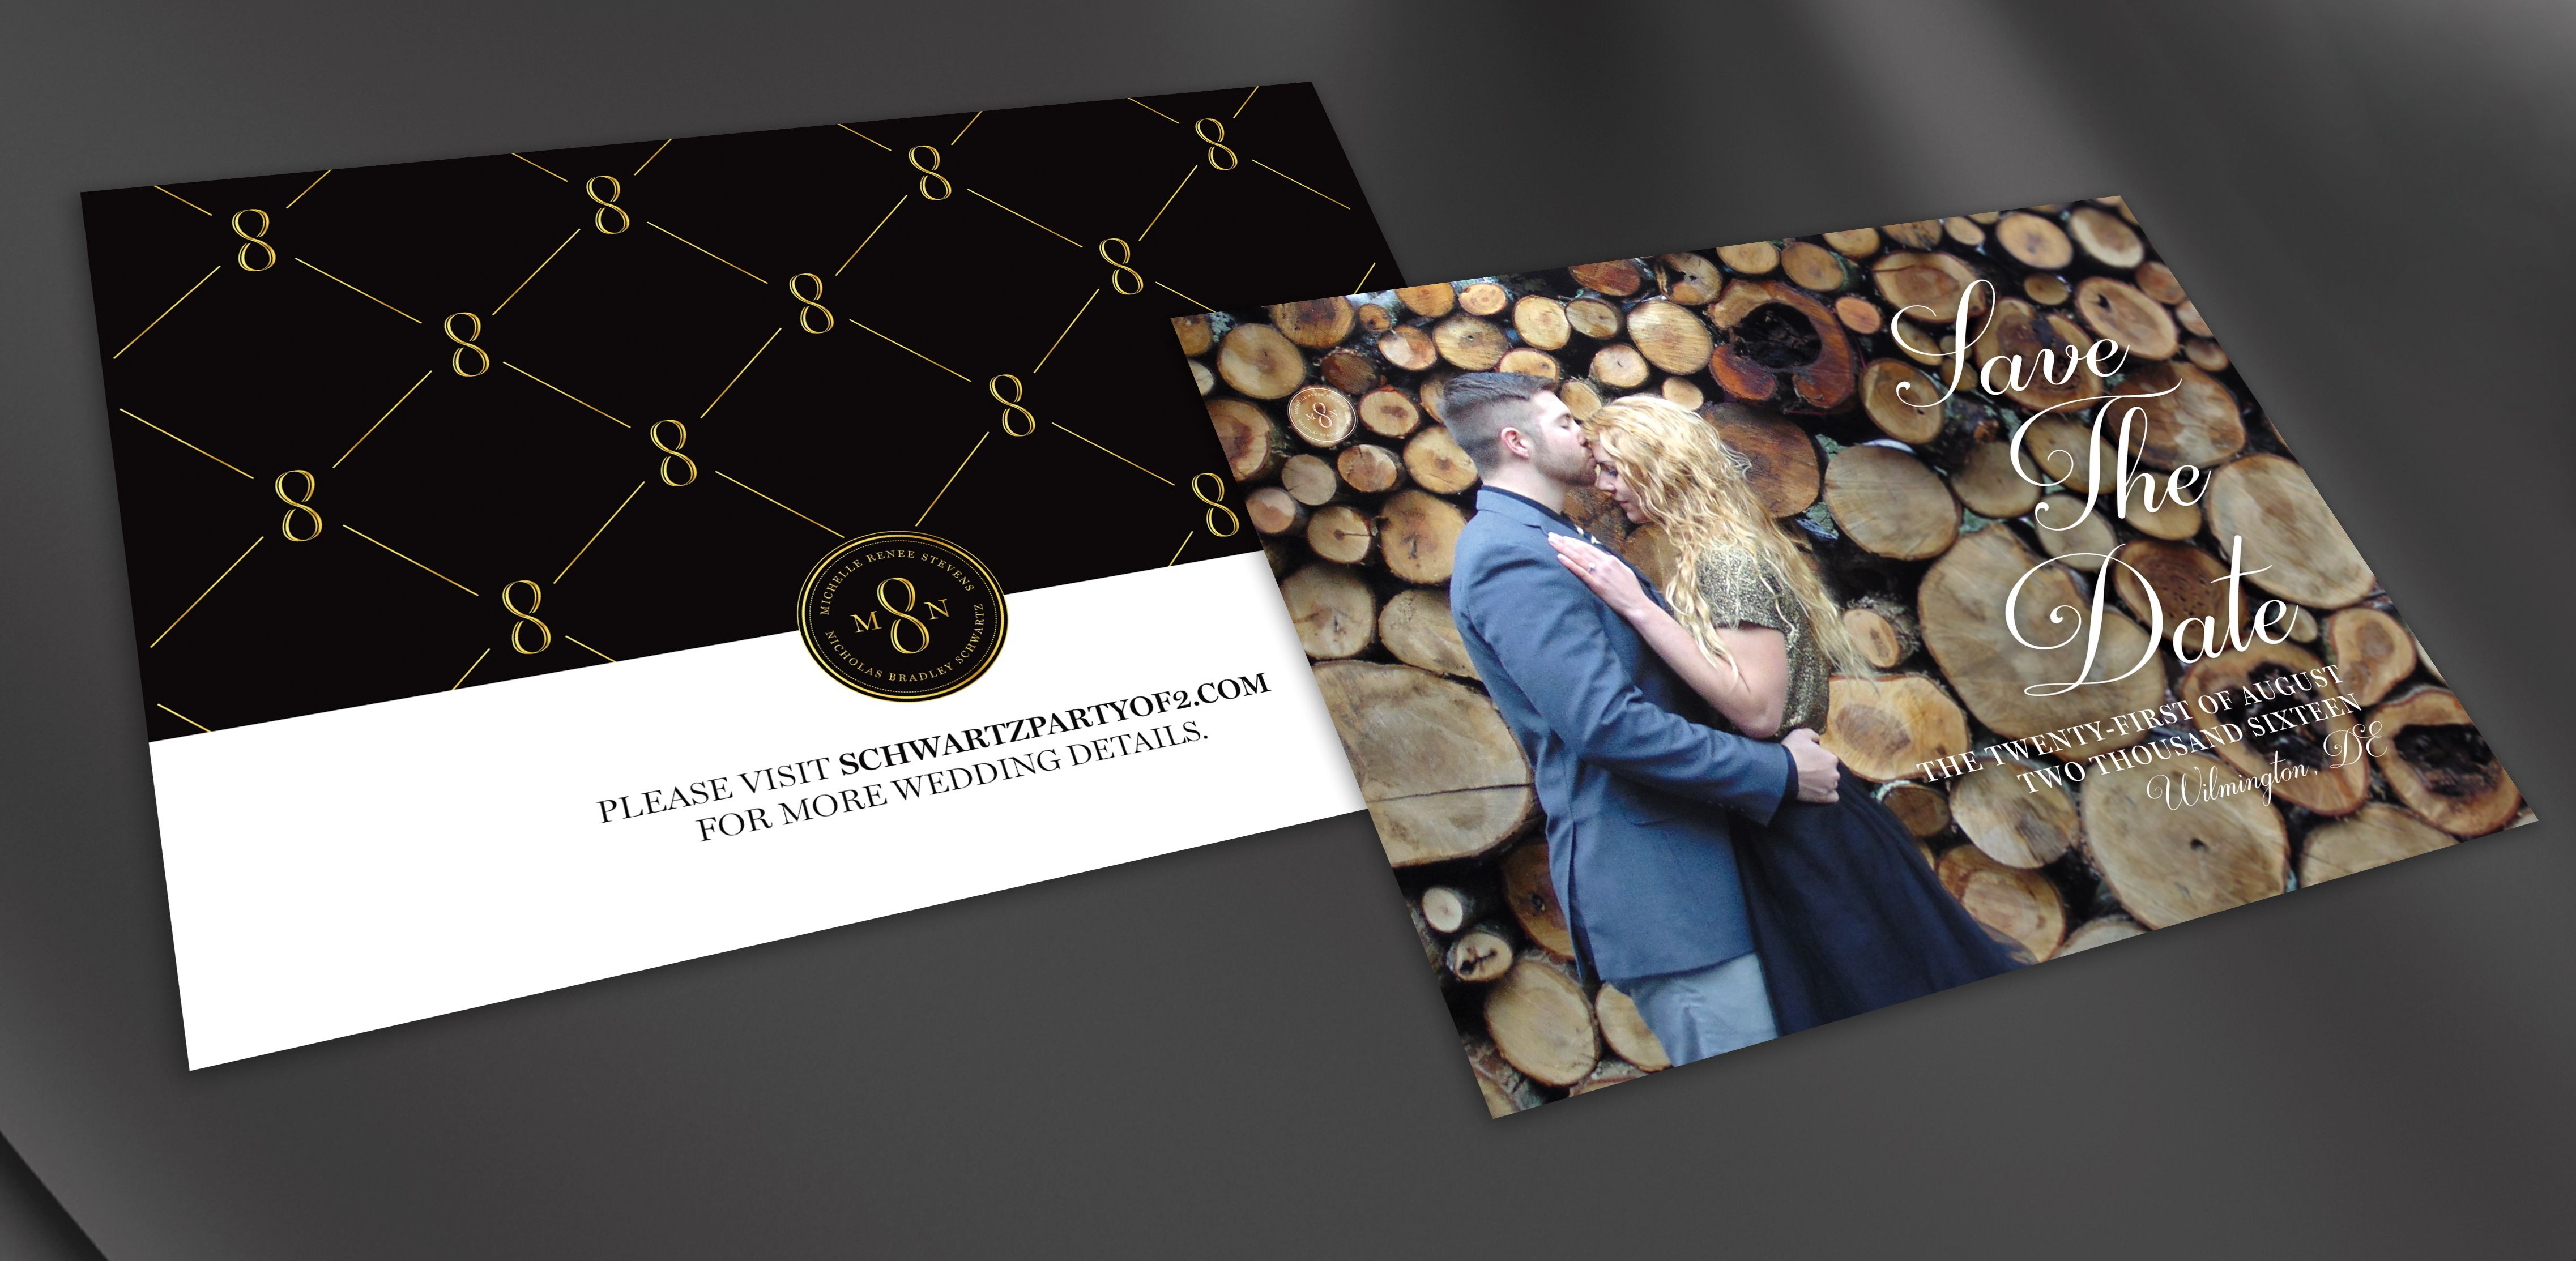 Save the date from Much Love Designs. Completely custom designs to brand your wedding.